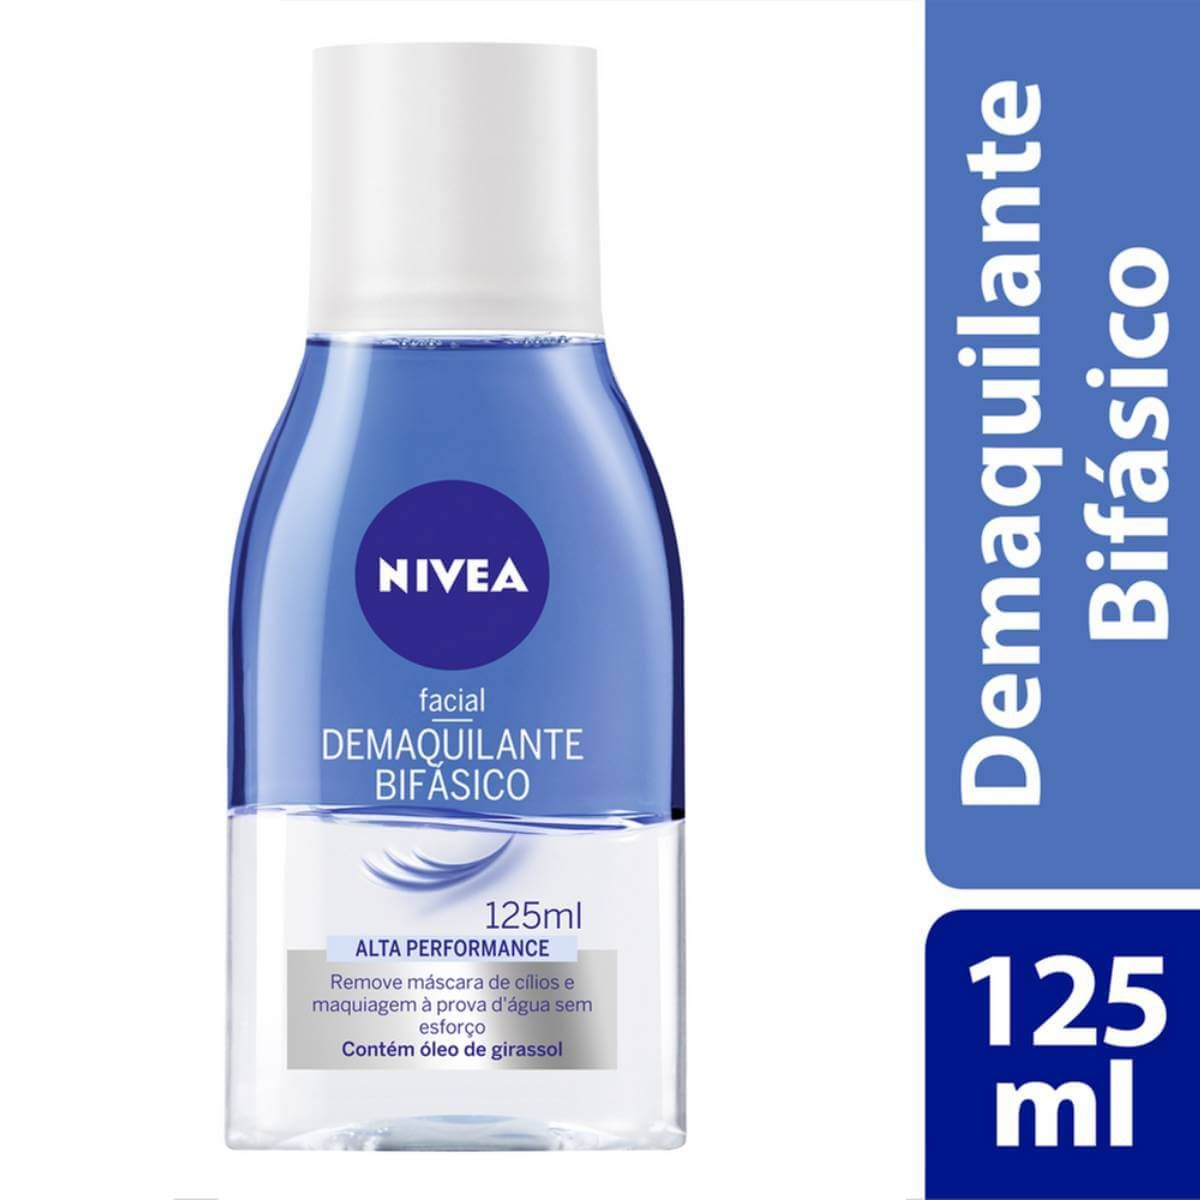 Nivea Demaquilante Bifásico Alta Performance 125mL